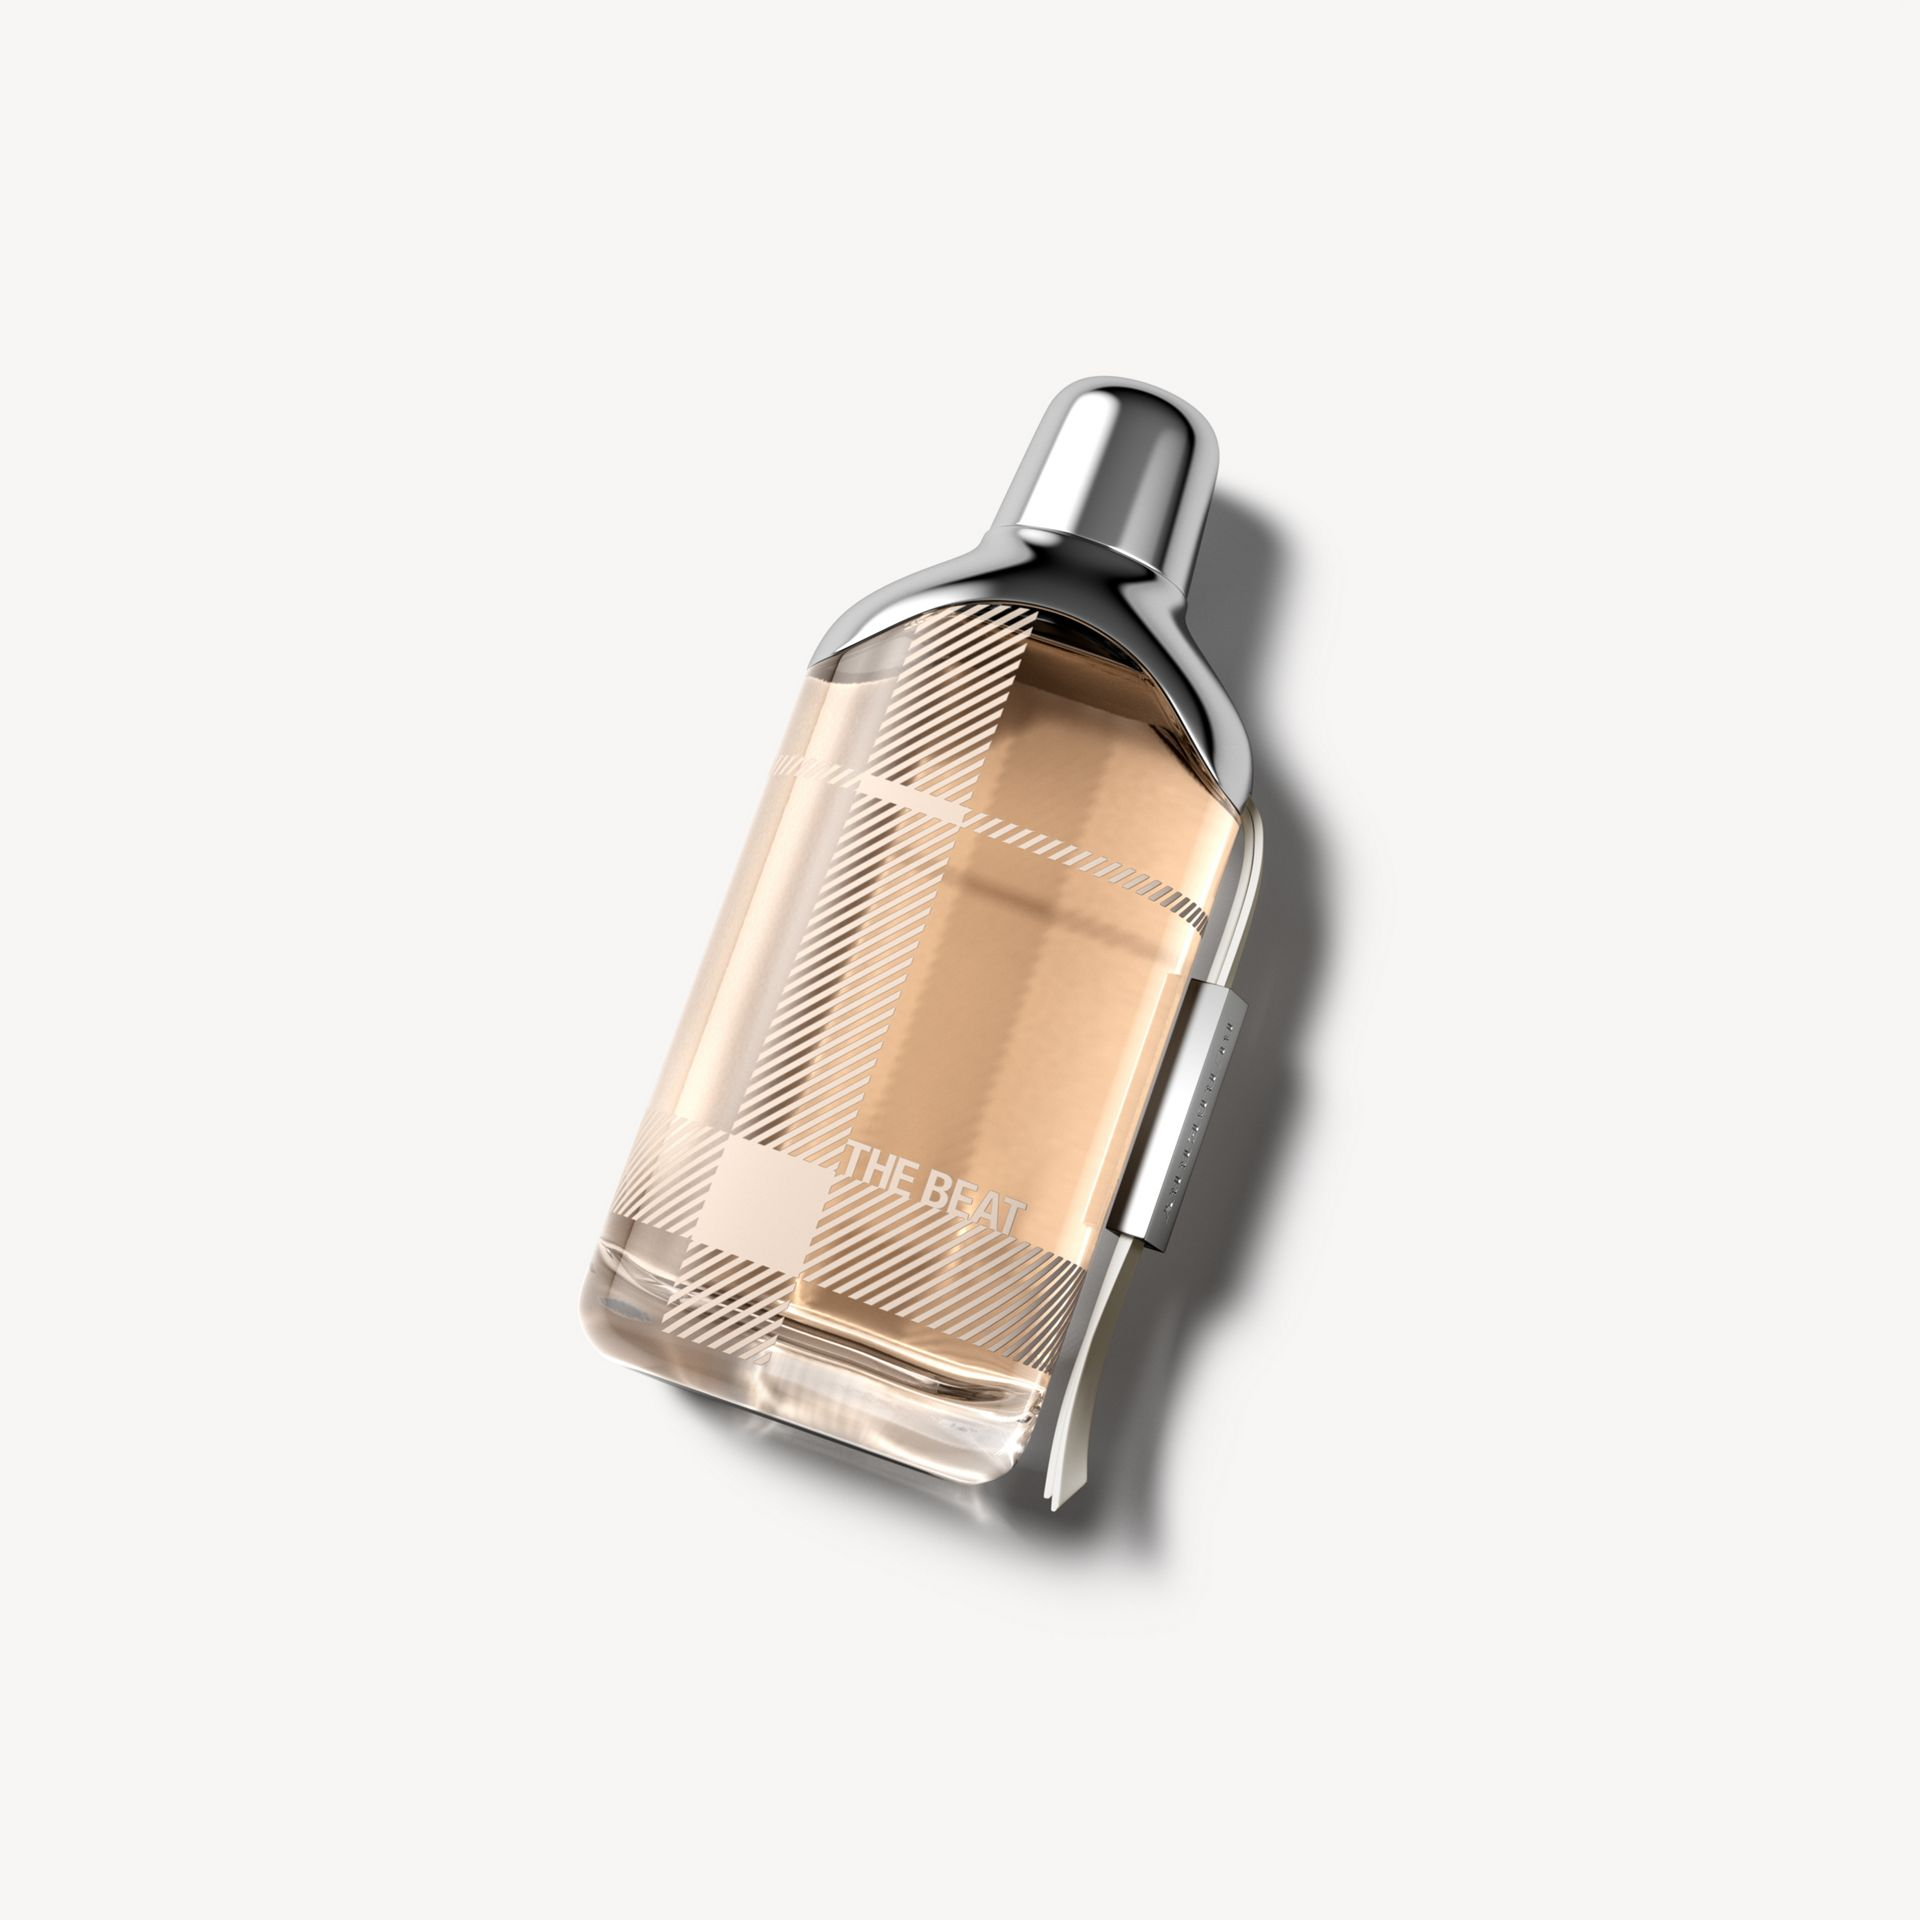 Burberry The Beat Eau de Parfum 75ml - Women | Burberry - gallery image 0